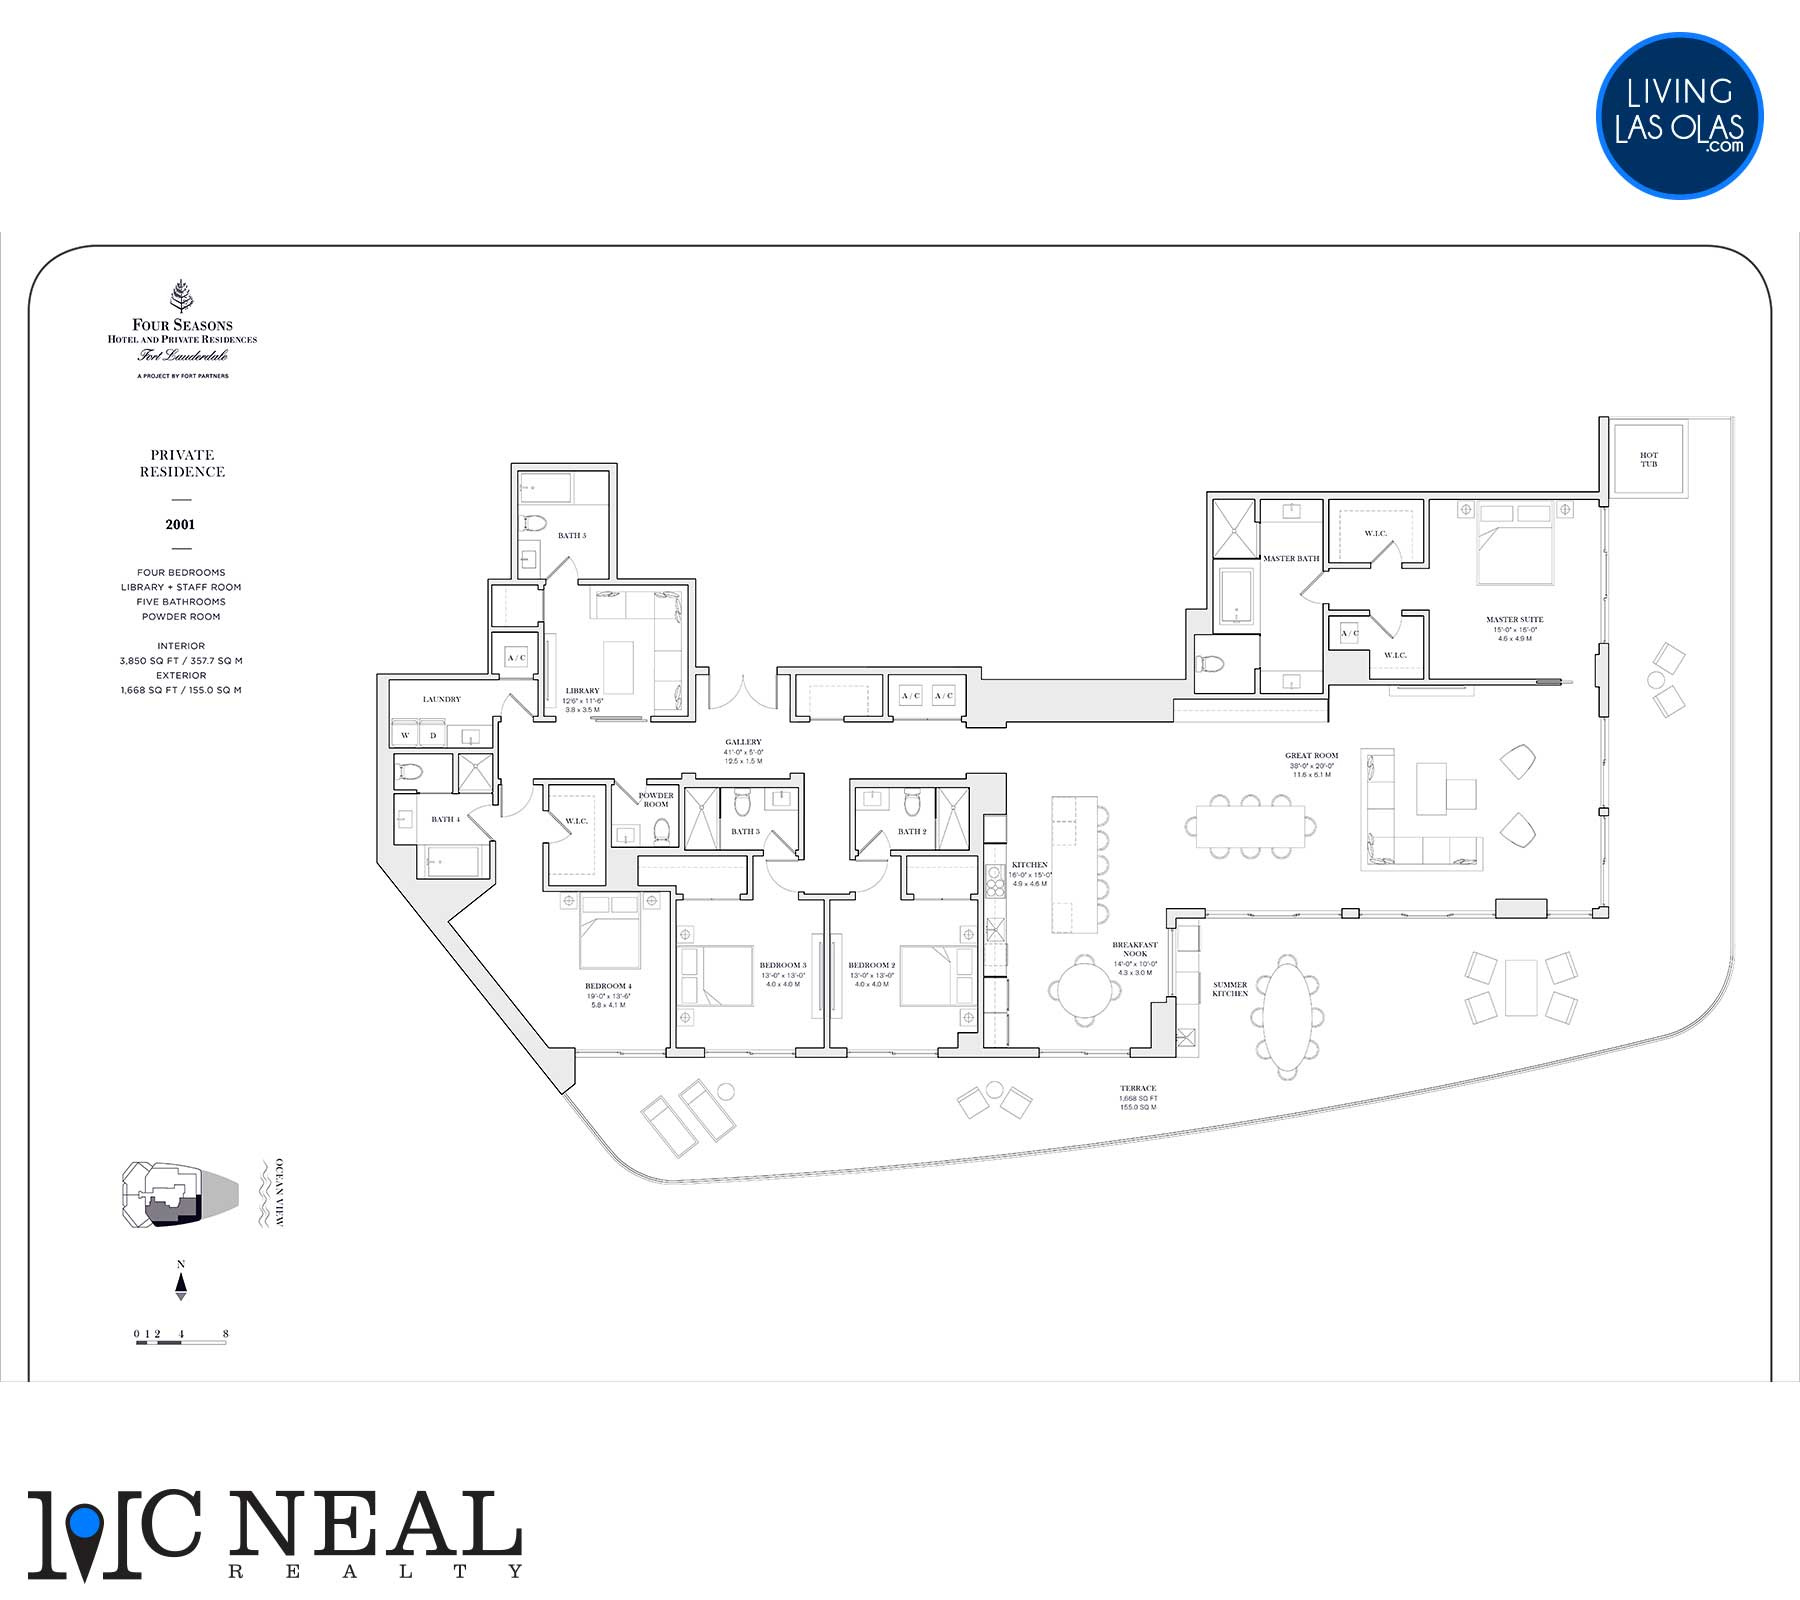 Four Seasons Private Residences Floor Plan 2001